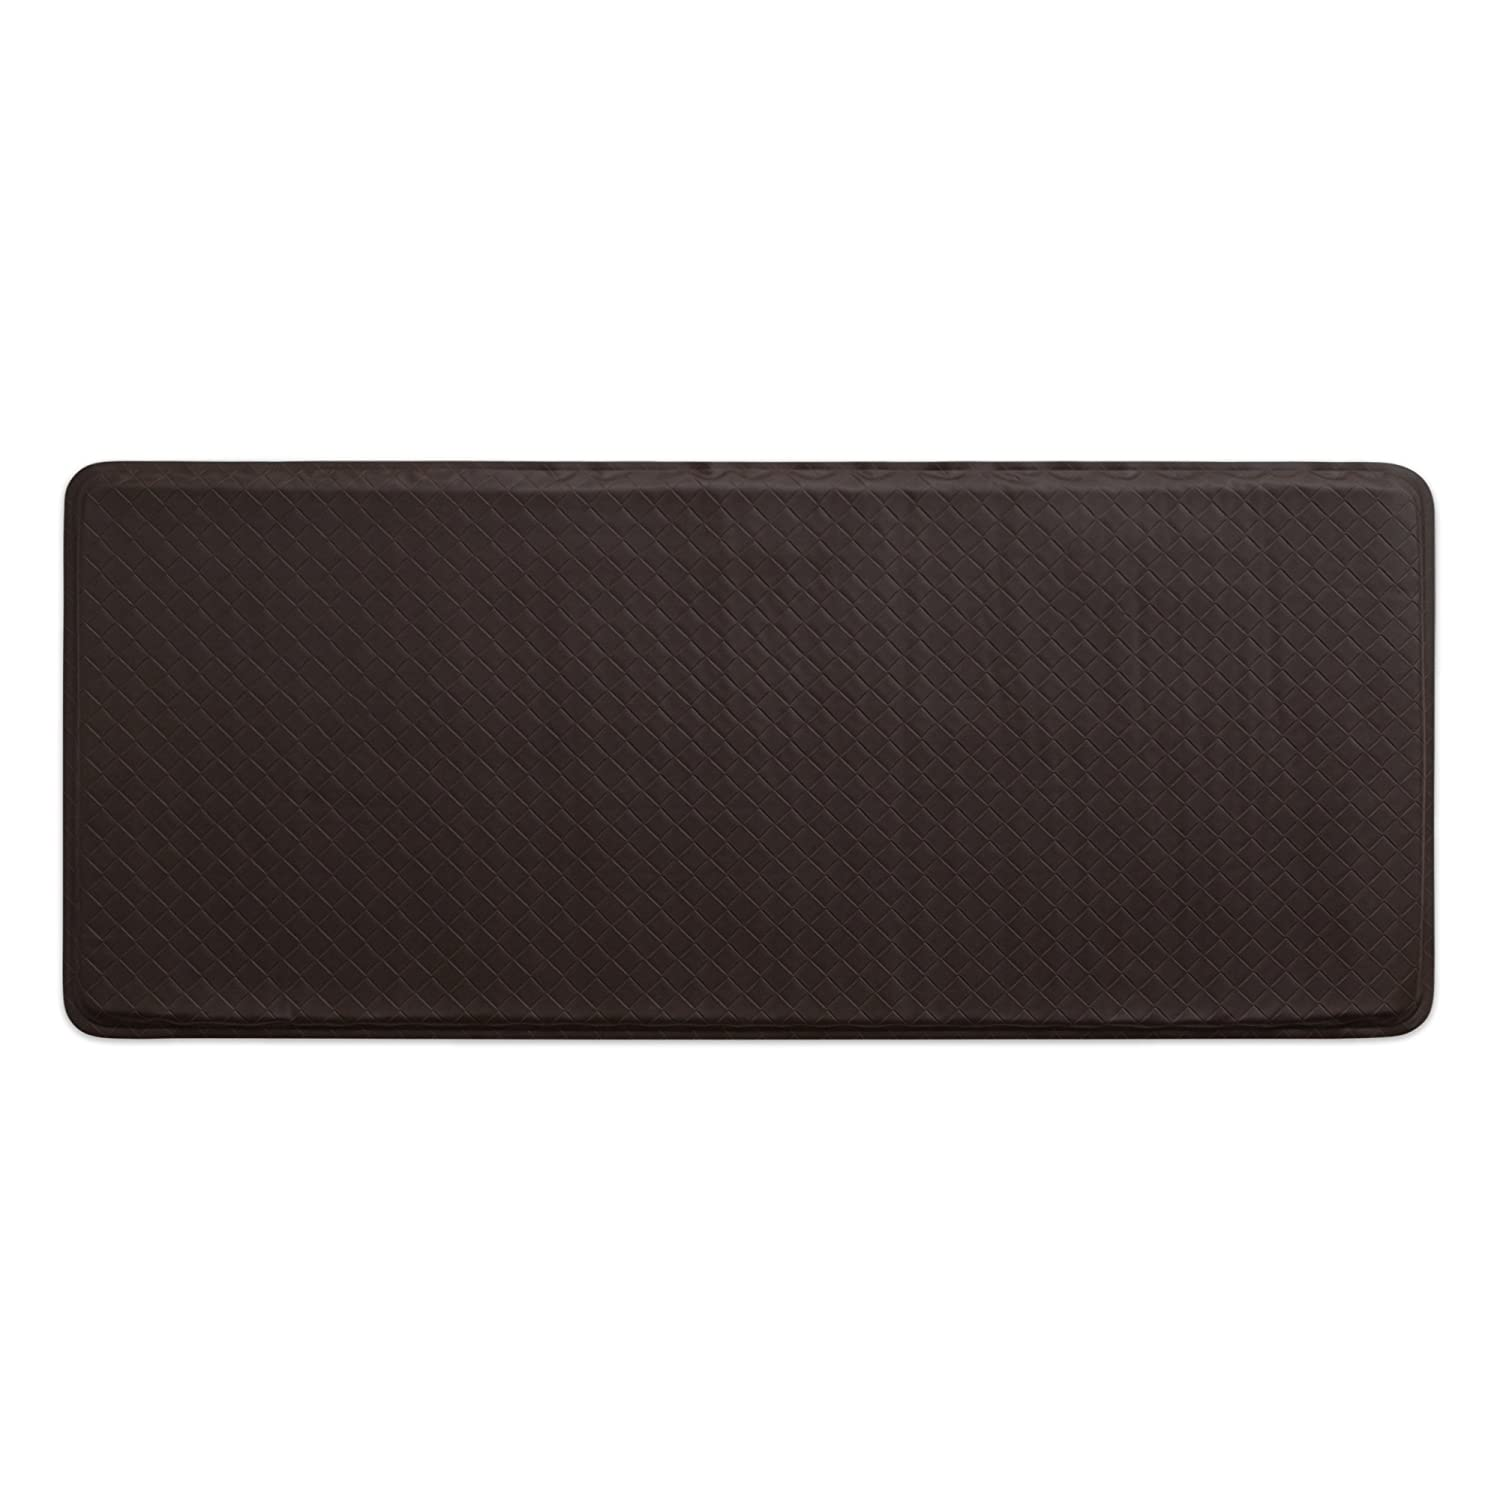 """GelPro Classic Anti-Fatigue Kitchen Comfort Chef Floor Mat, 20x48"""", Basketweave Truffle Stain Resistant Surface with 1/2"""" Gel Core for Health and Wellness"""